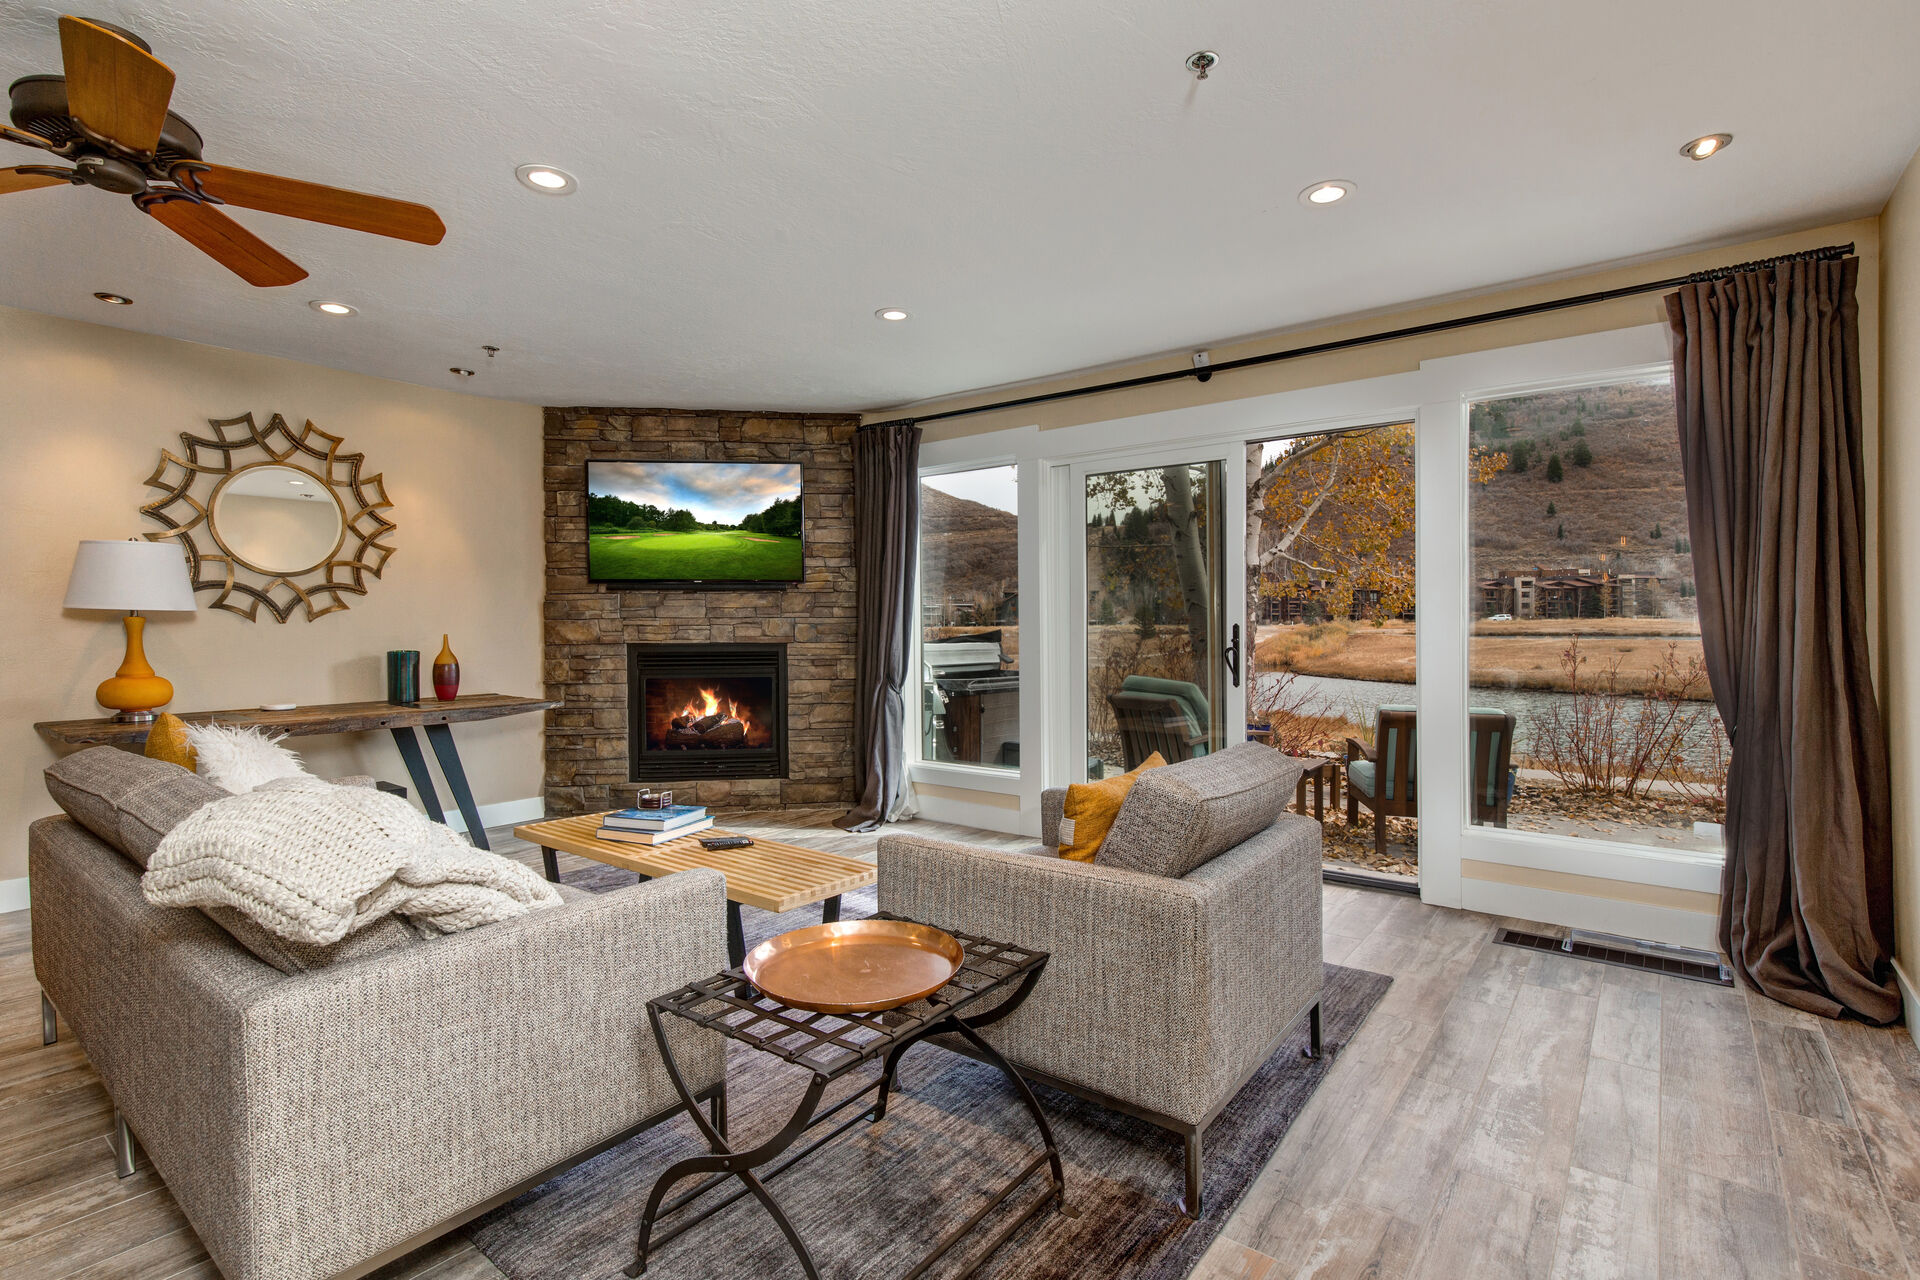 Living Room with Fireplace in Our Condos for Rent in Park City.